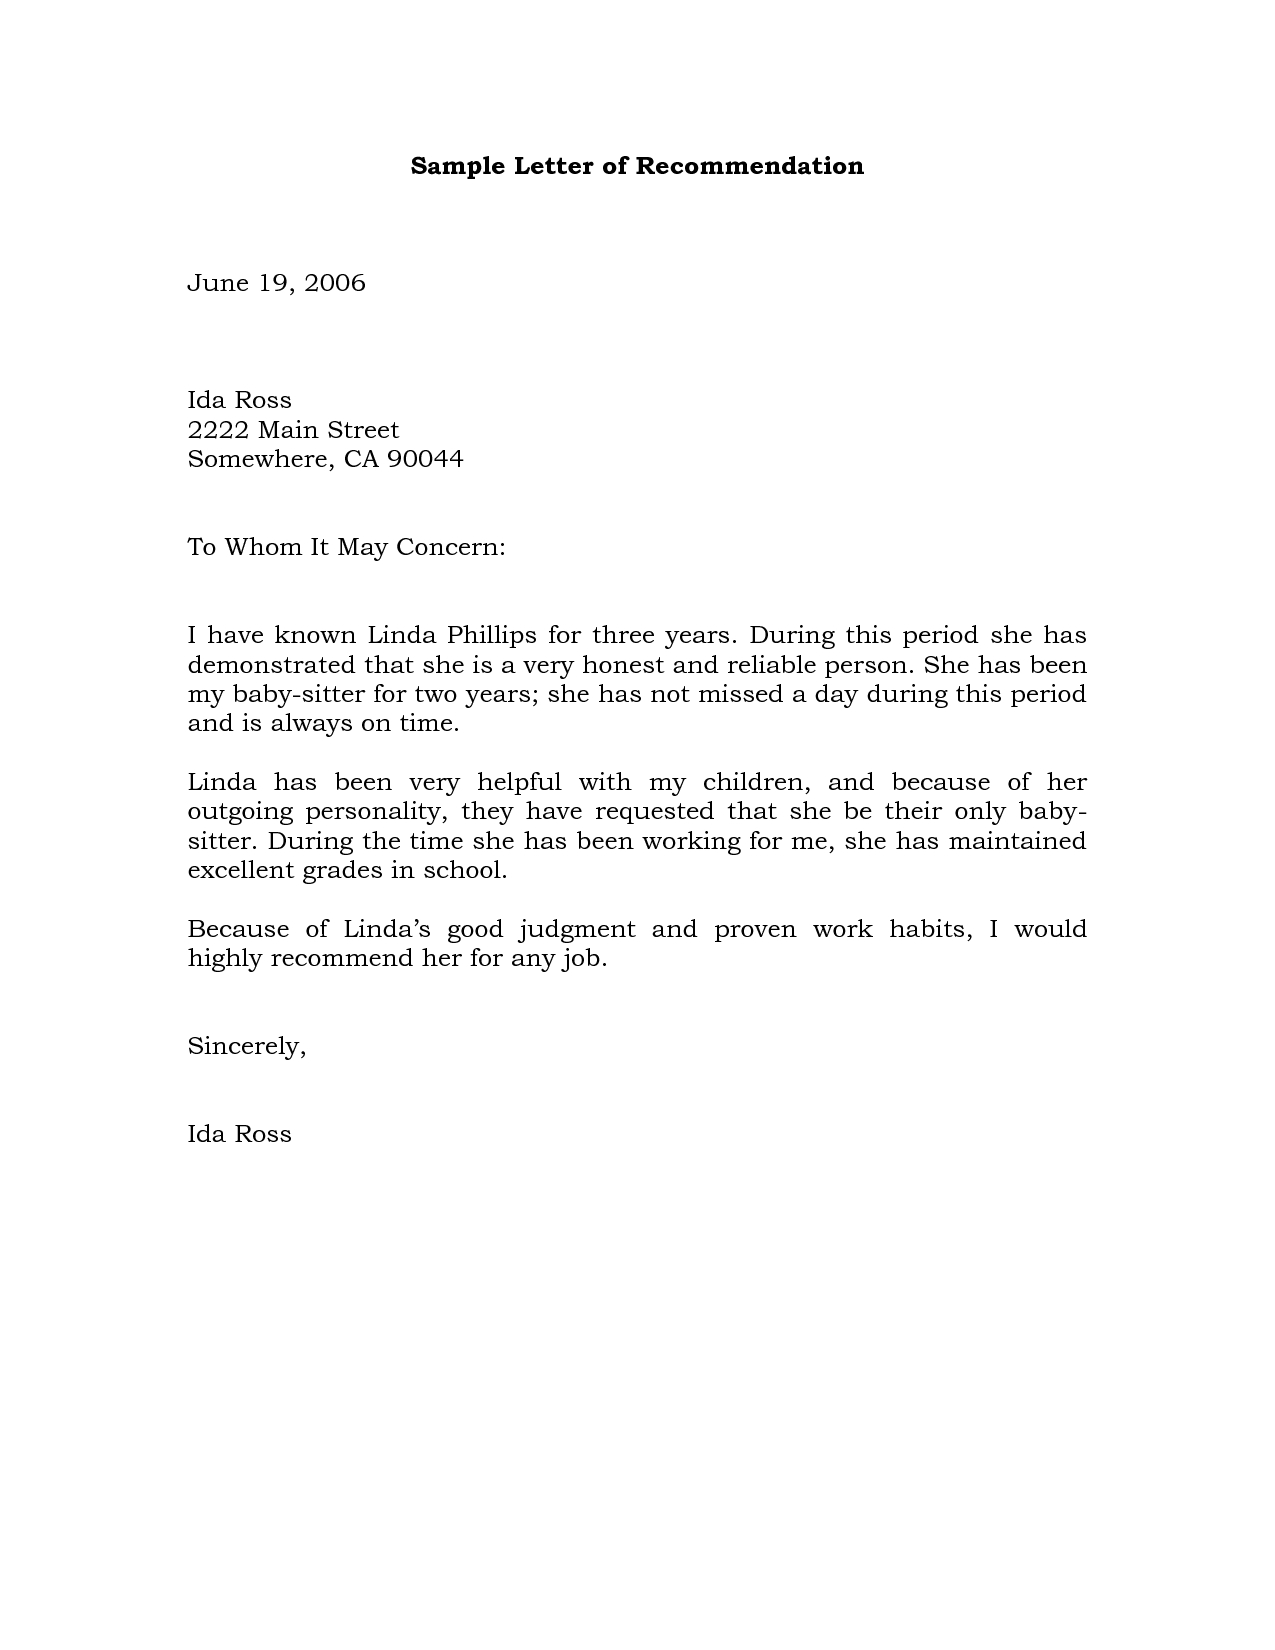 business referral letter template example-Sample Re mendation Letter Example 6-f